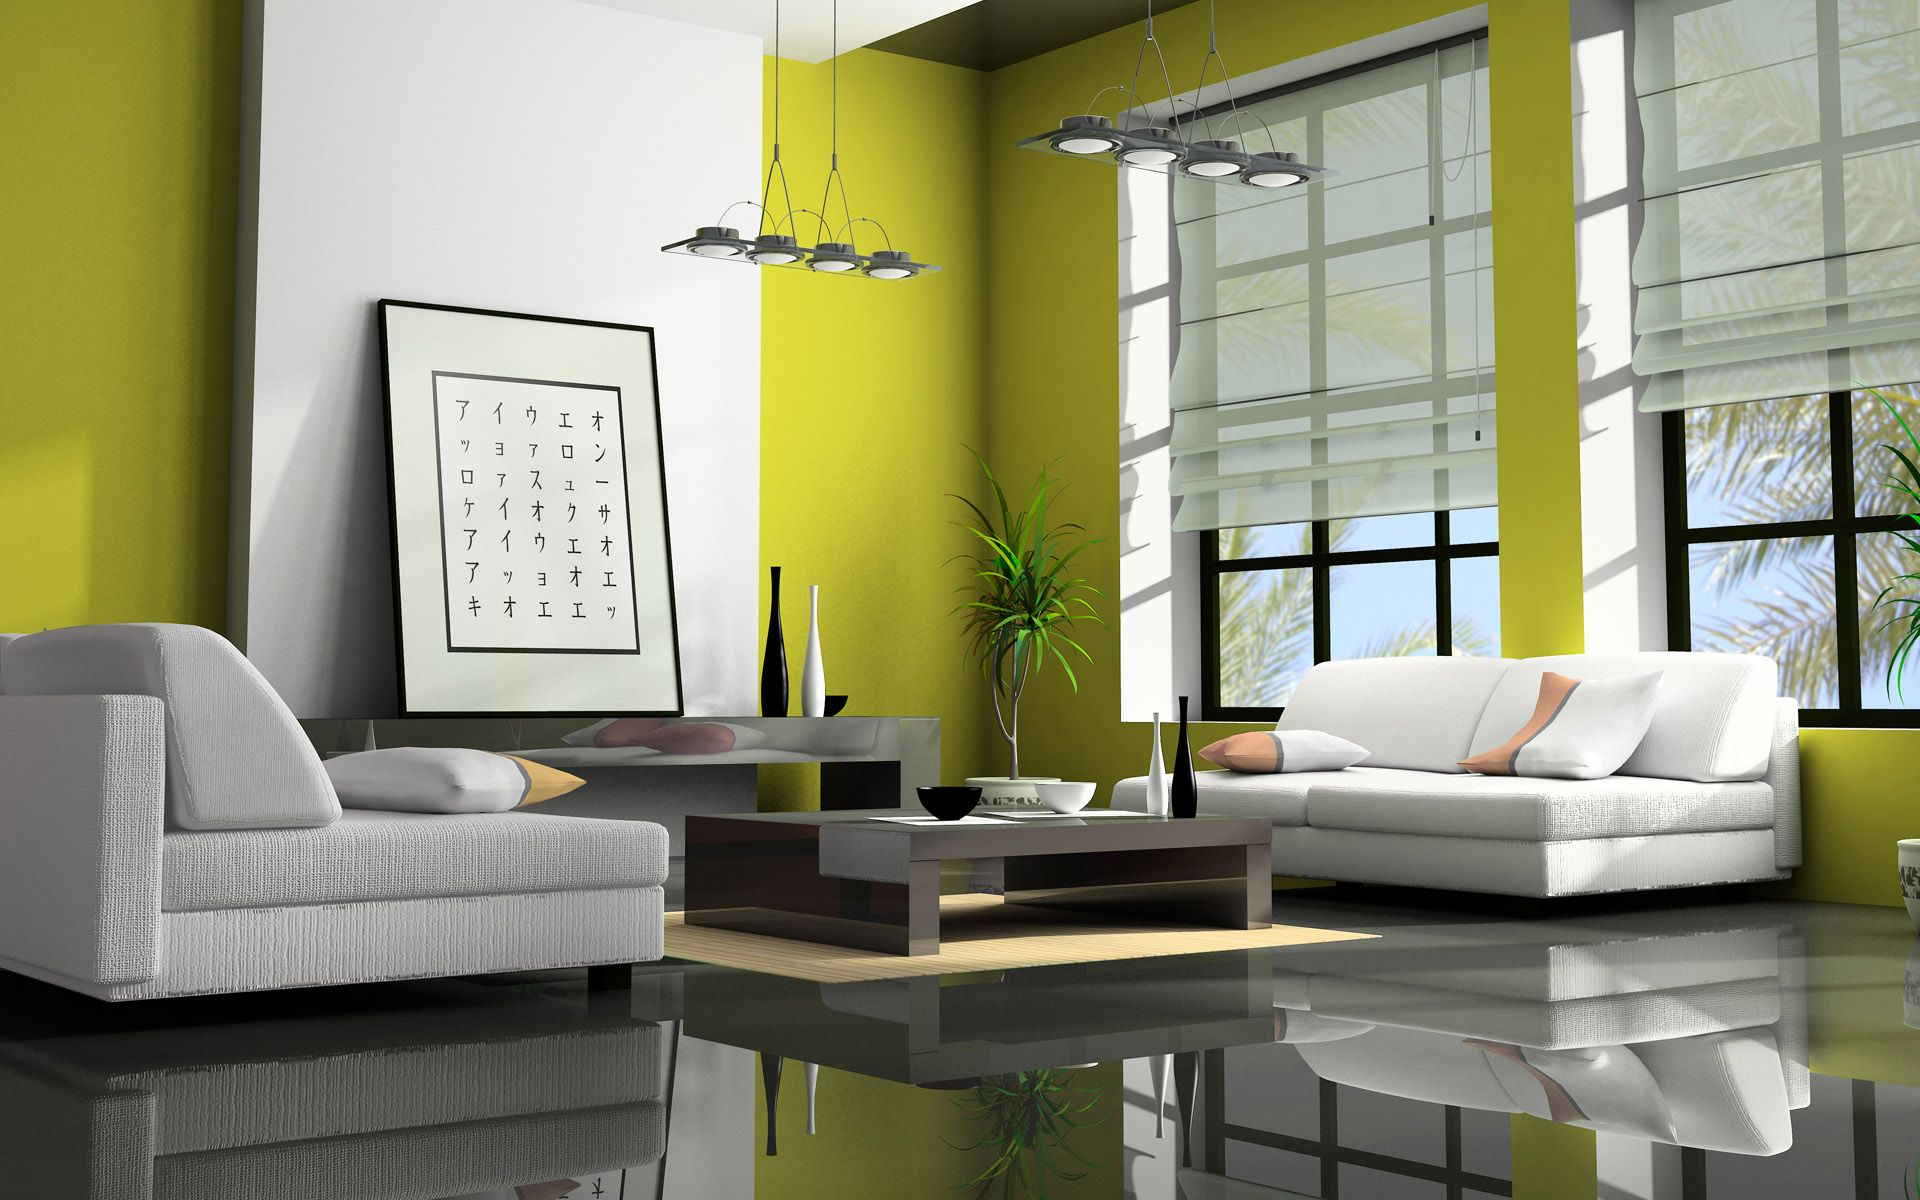 Living Room Design Program Glamorous Diseño De Interiores Arquitectura  Room Design Software Living Inspiration